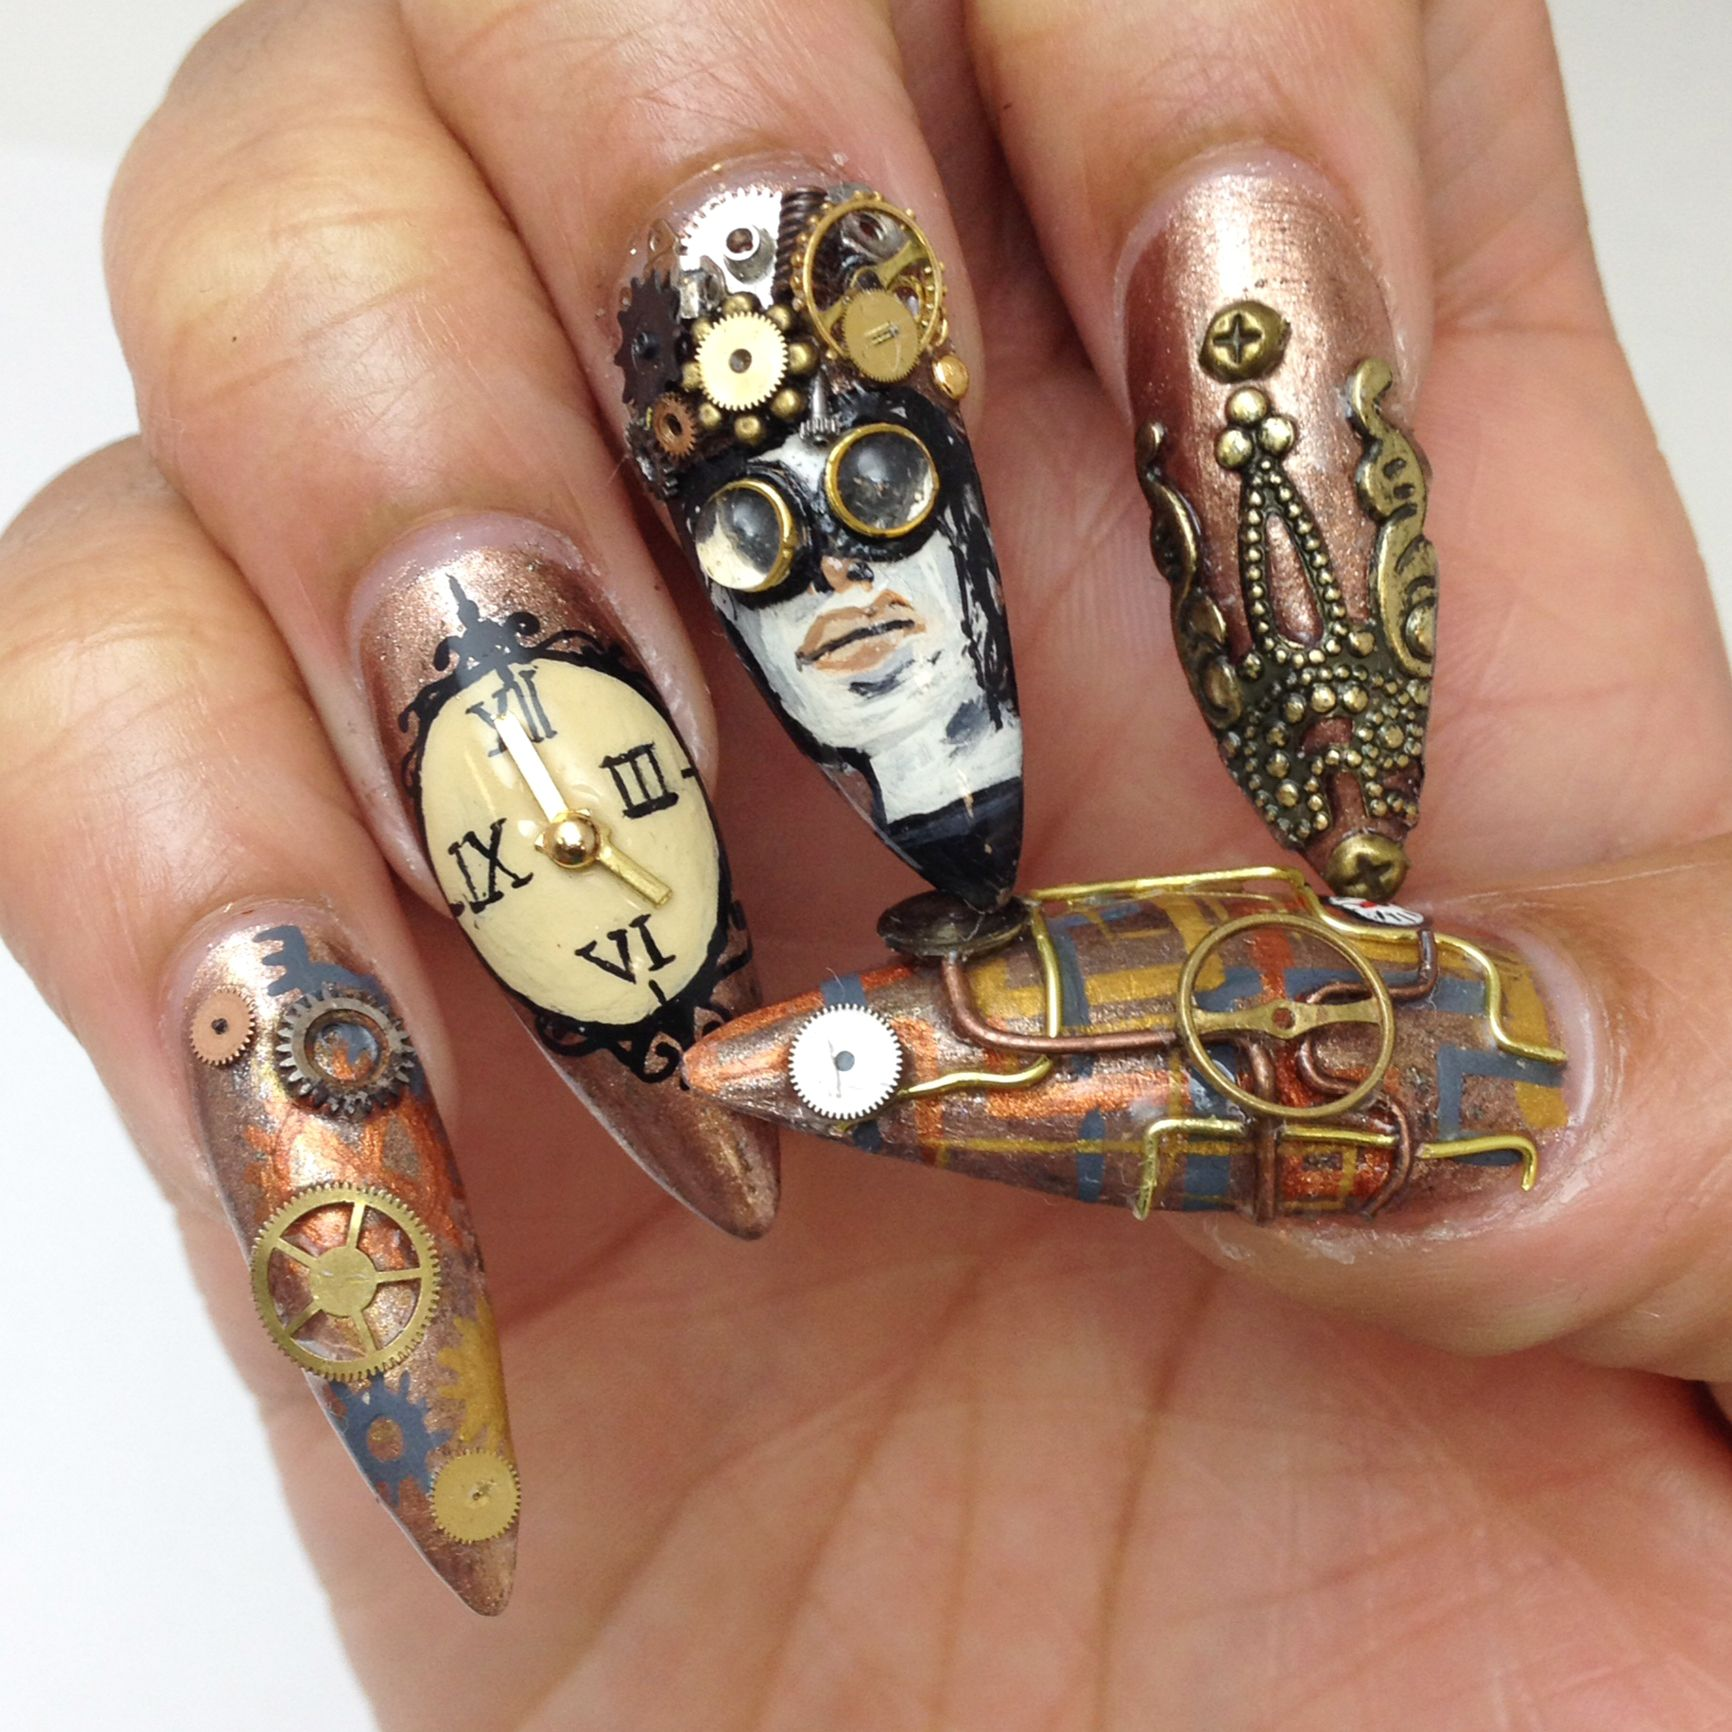 Lavette | Top nail, Nails magazine and Magazines